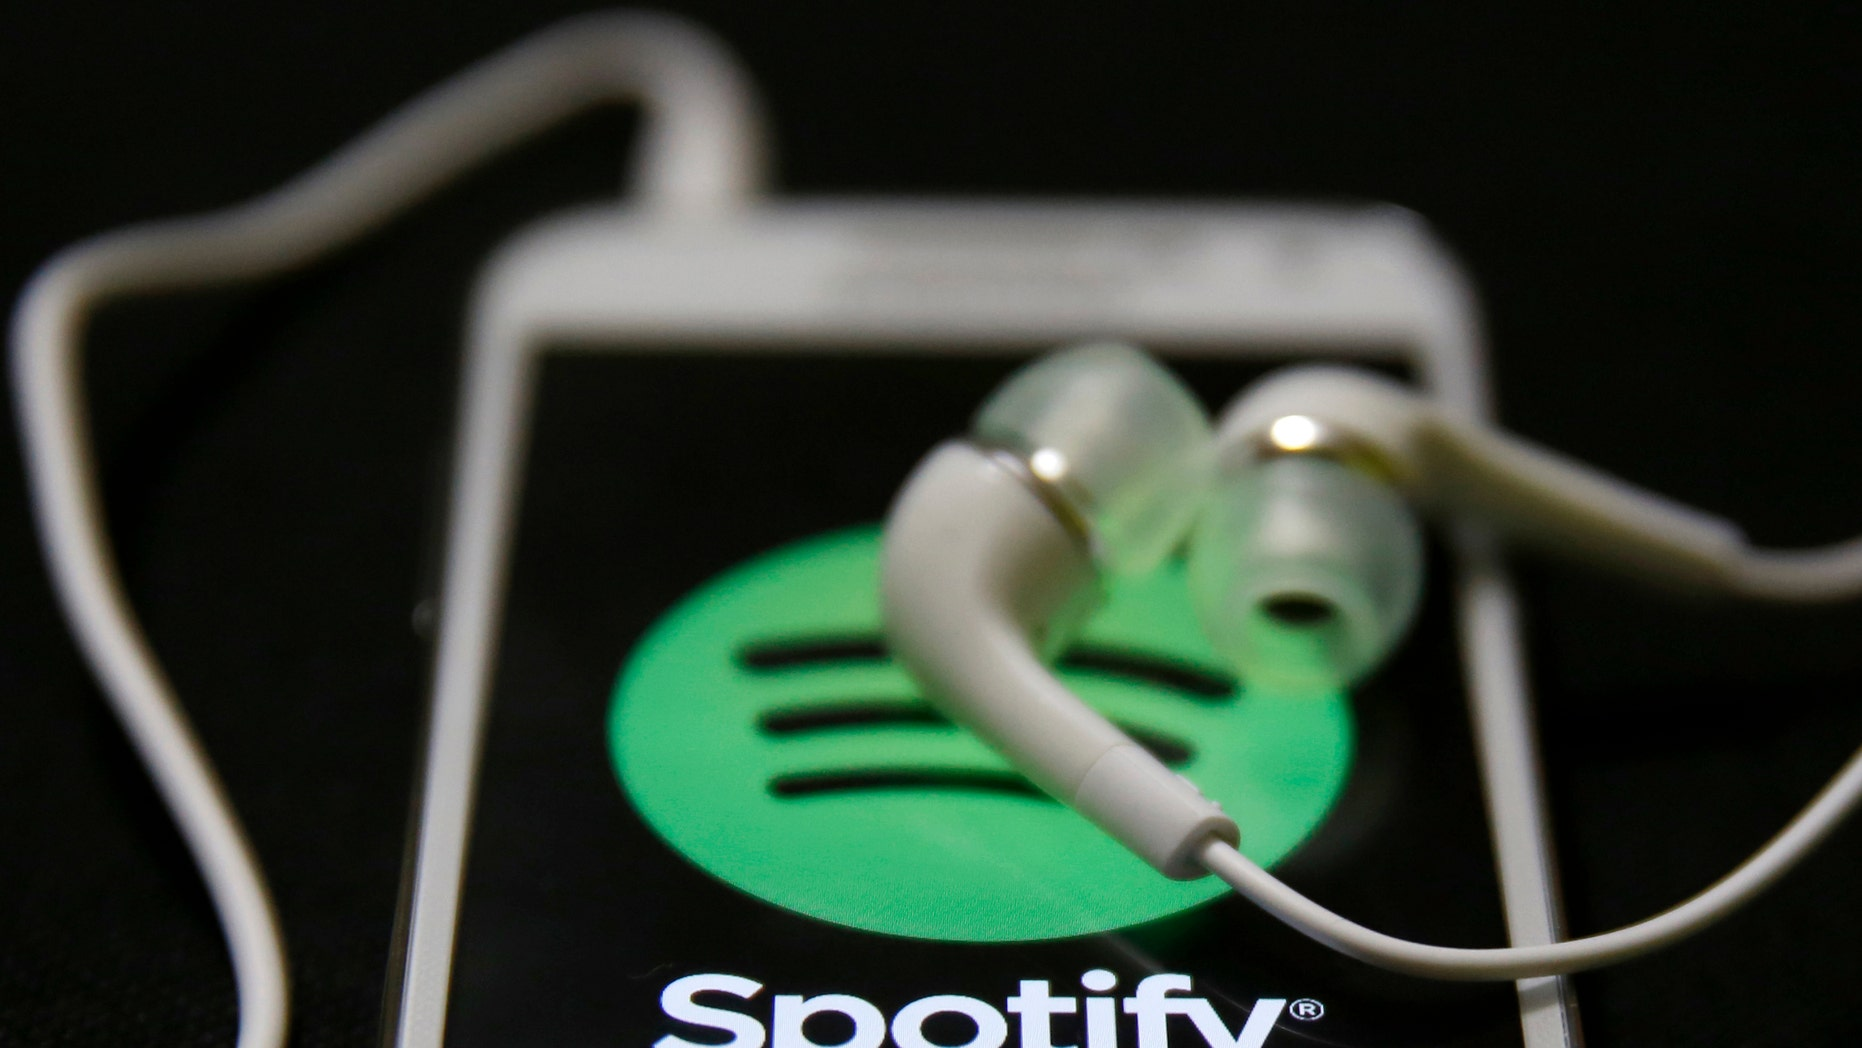 Earphones are seen on top of a smart phone with a Spotify logo on it, in Zenica February 20, 2014. Online music streaming service Spotify is recruiting a U.S. financial reporting specialist, adding to speculation that the Swedish start-up is preparing for a share listing, which one banker said could value the firm at as much as $8 billion (4 billion pounds). REUTERS/Dado Ruvic (BOSNIA AND HERZEGOVINA - Tags: SCIENCE TECHNOLOGY BUSINESS SOCIETY) - RTX1971J